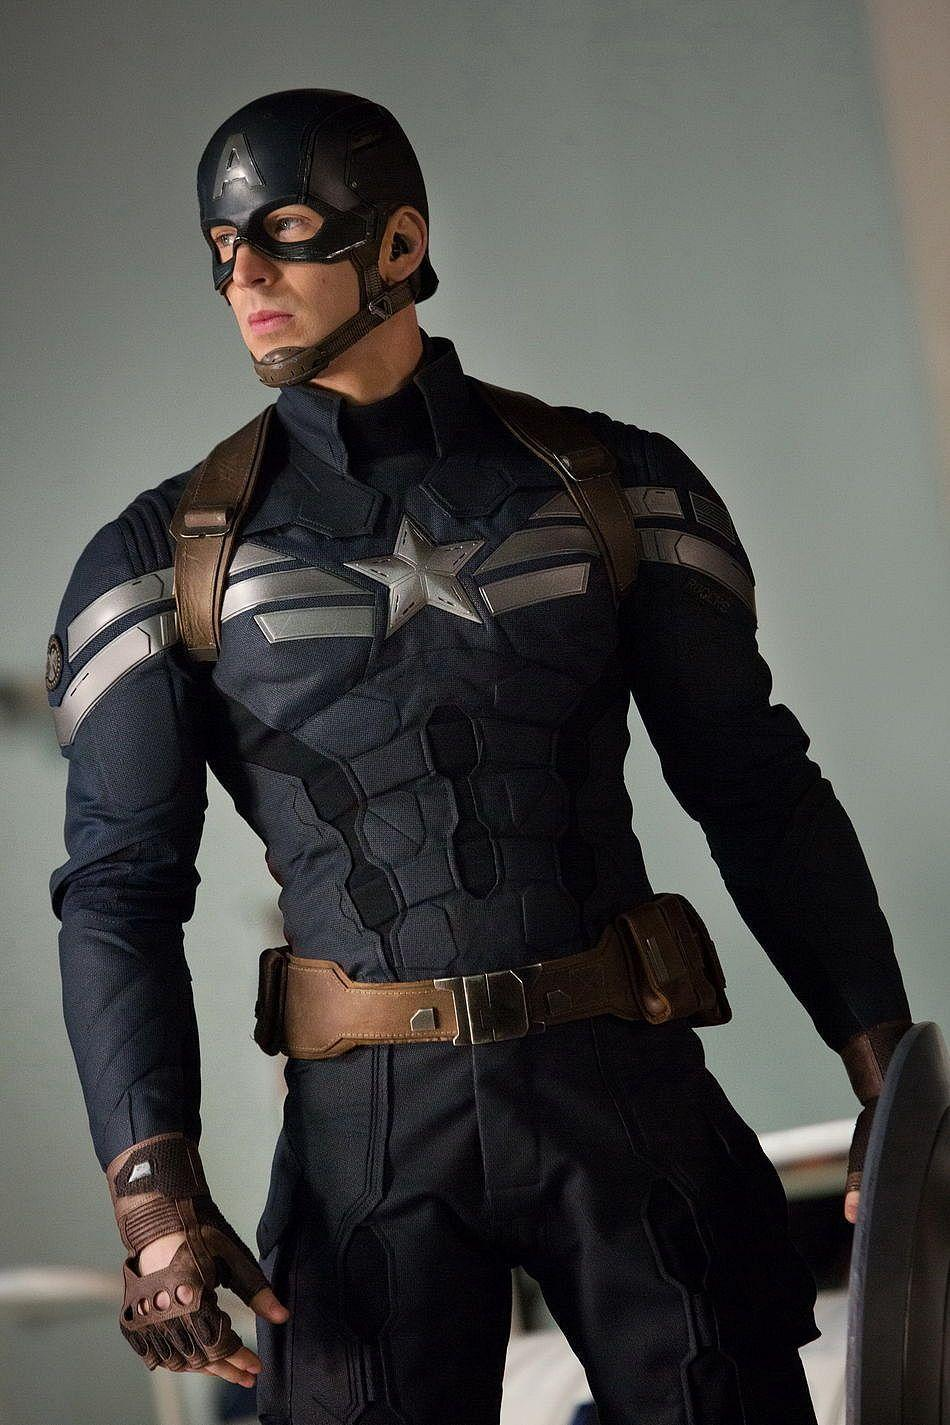 Captain America: The Winter Soldier 303818 Gallery, Image